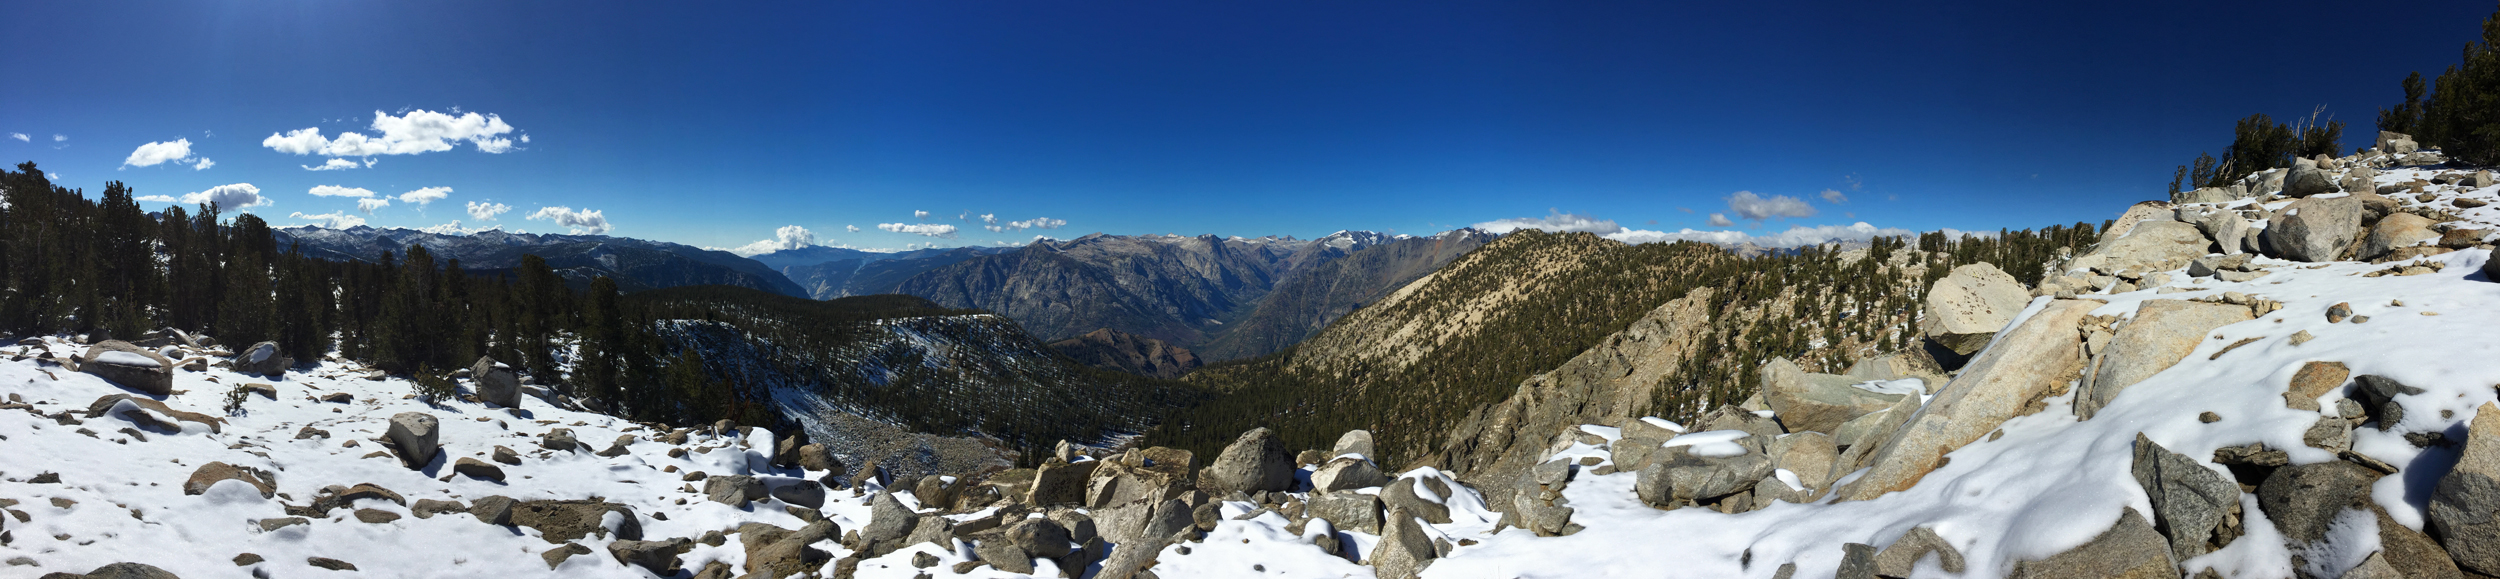 It was hard not to stop every three seconds to photograph while climbing up Windy Ridge. This panorama explains why.